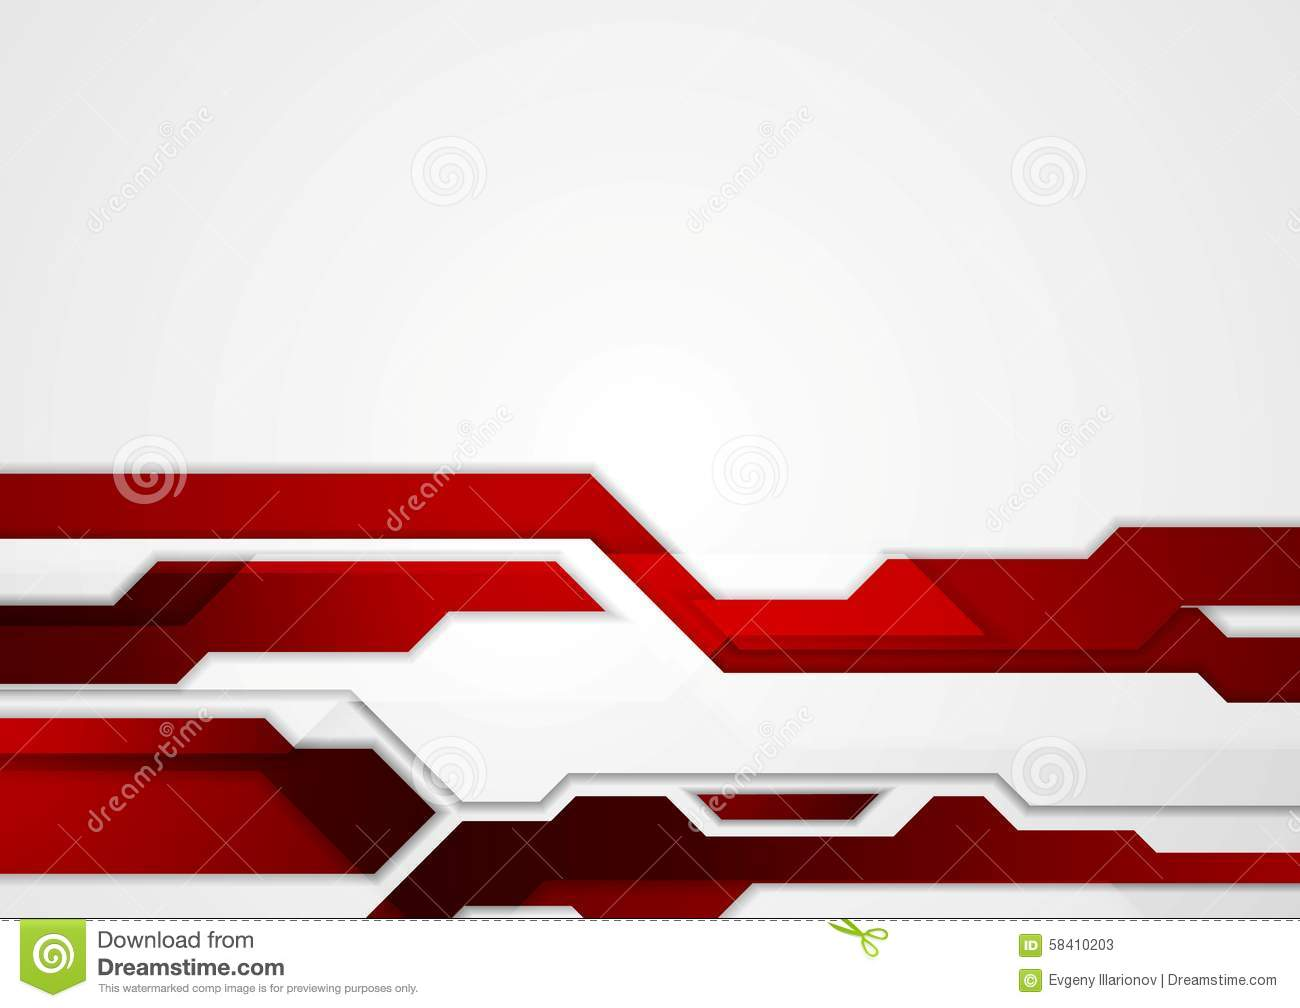 Abstract Red Geometric Tech Corporate Design Stock Vector